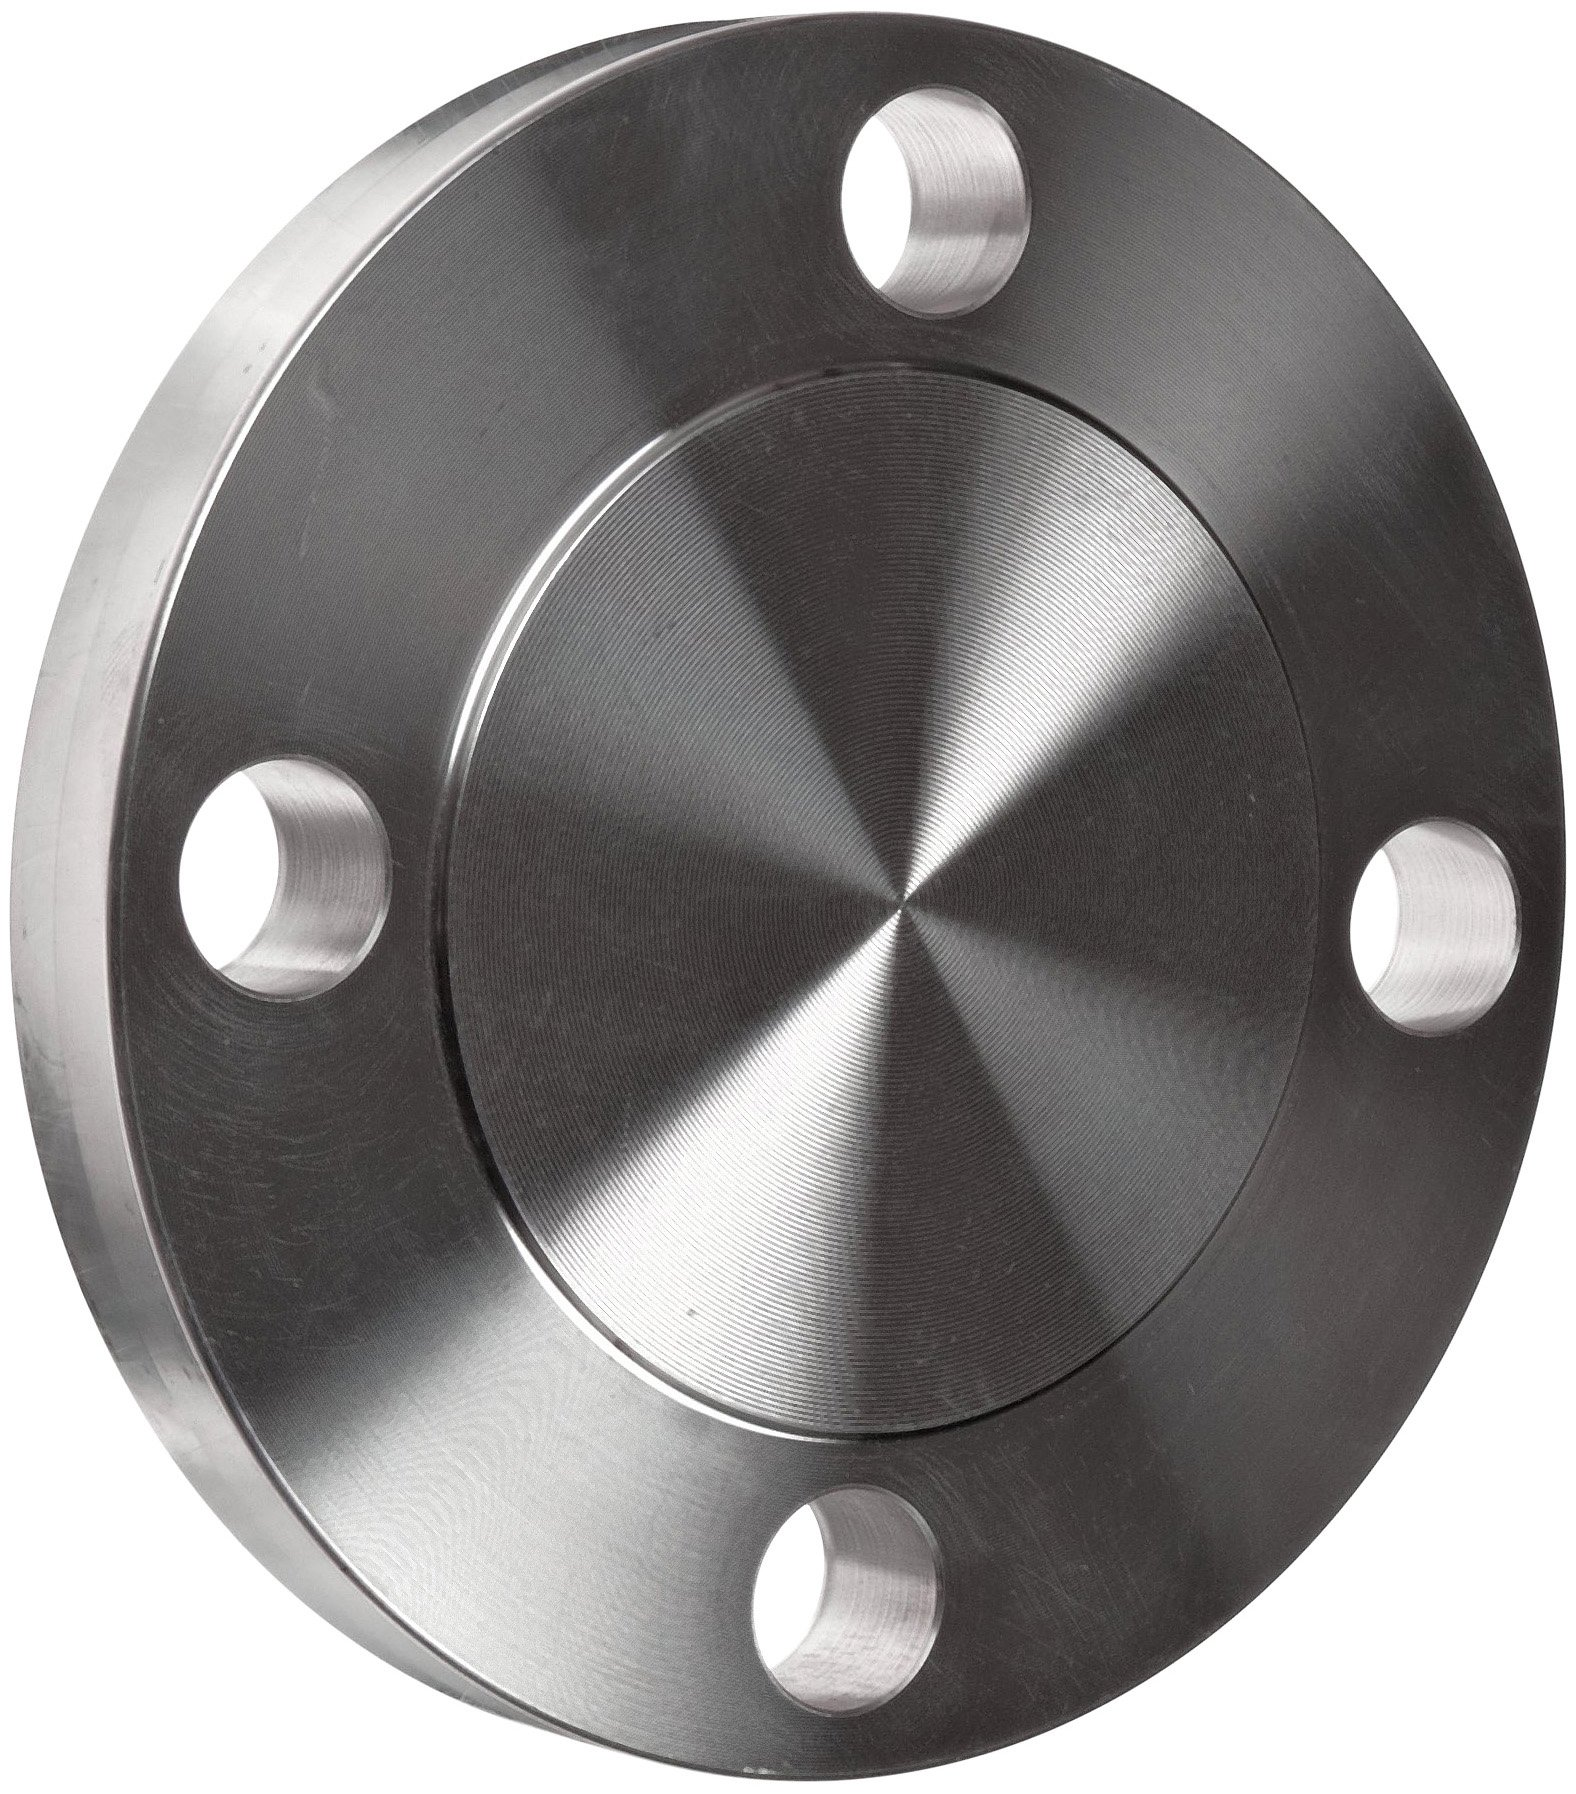 Stainless Steel 316/316L Pipe Fitting, Flange, Blind, Class 150, 5'' Pipe Size